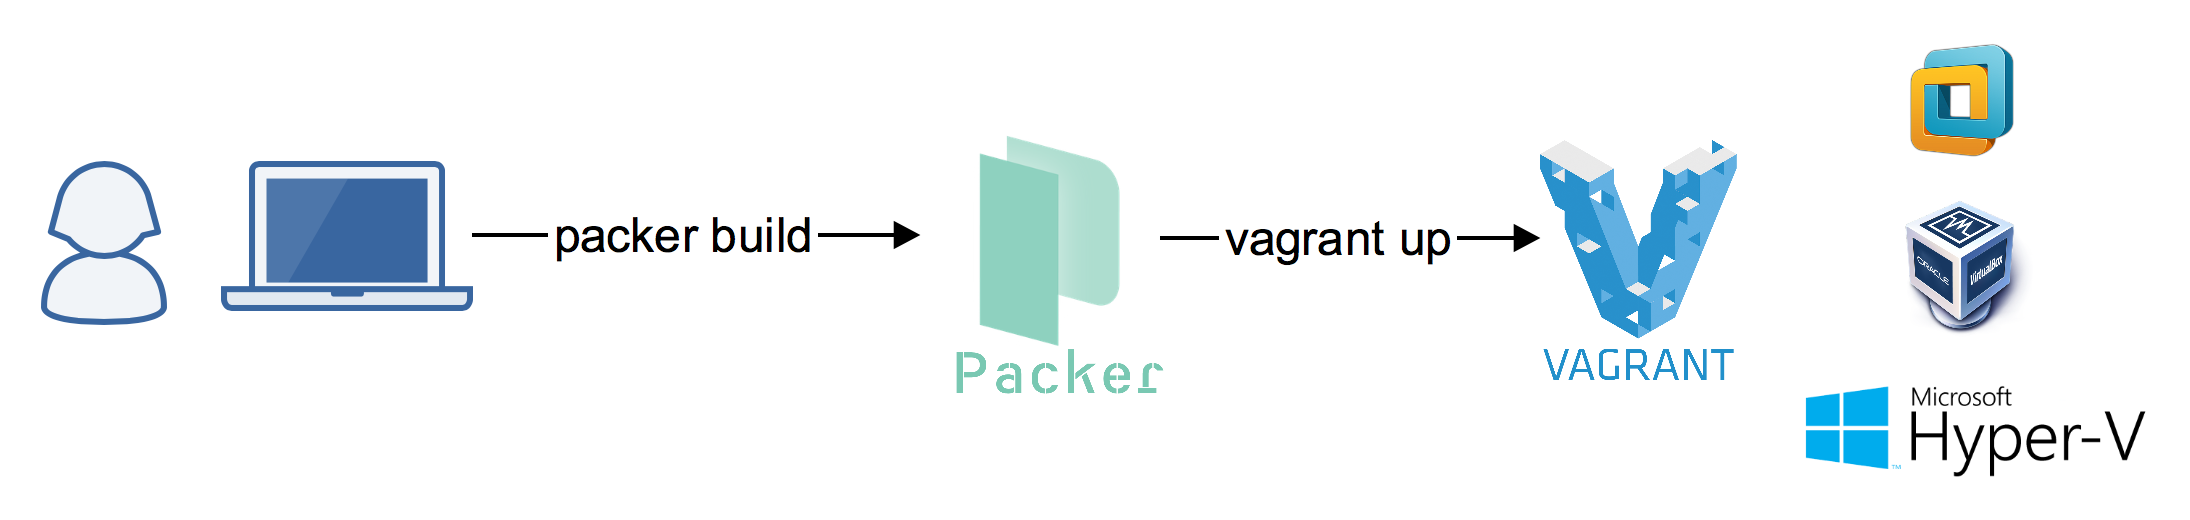 packer build, vagrant up